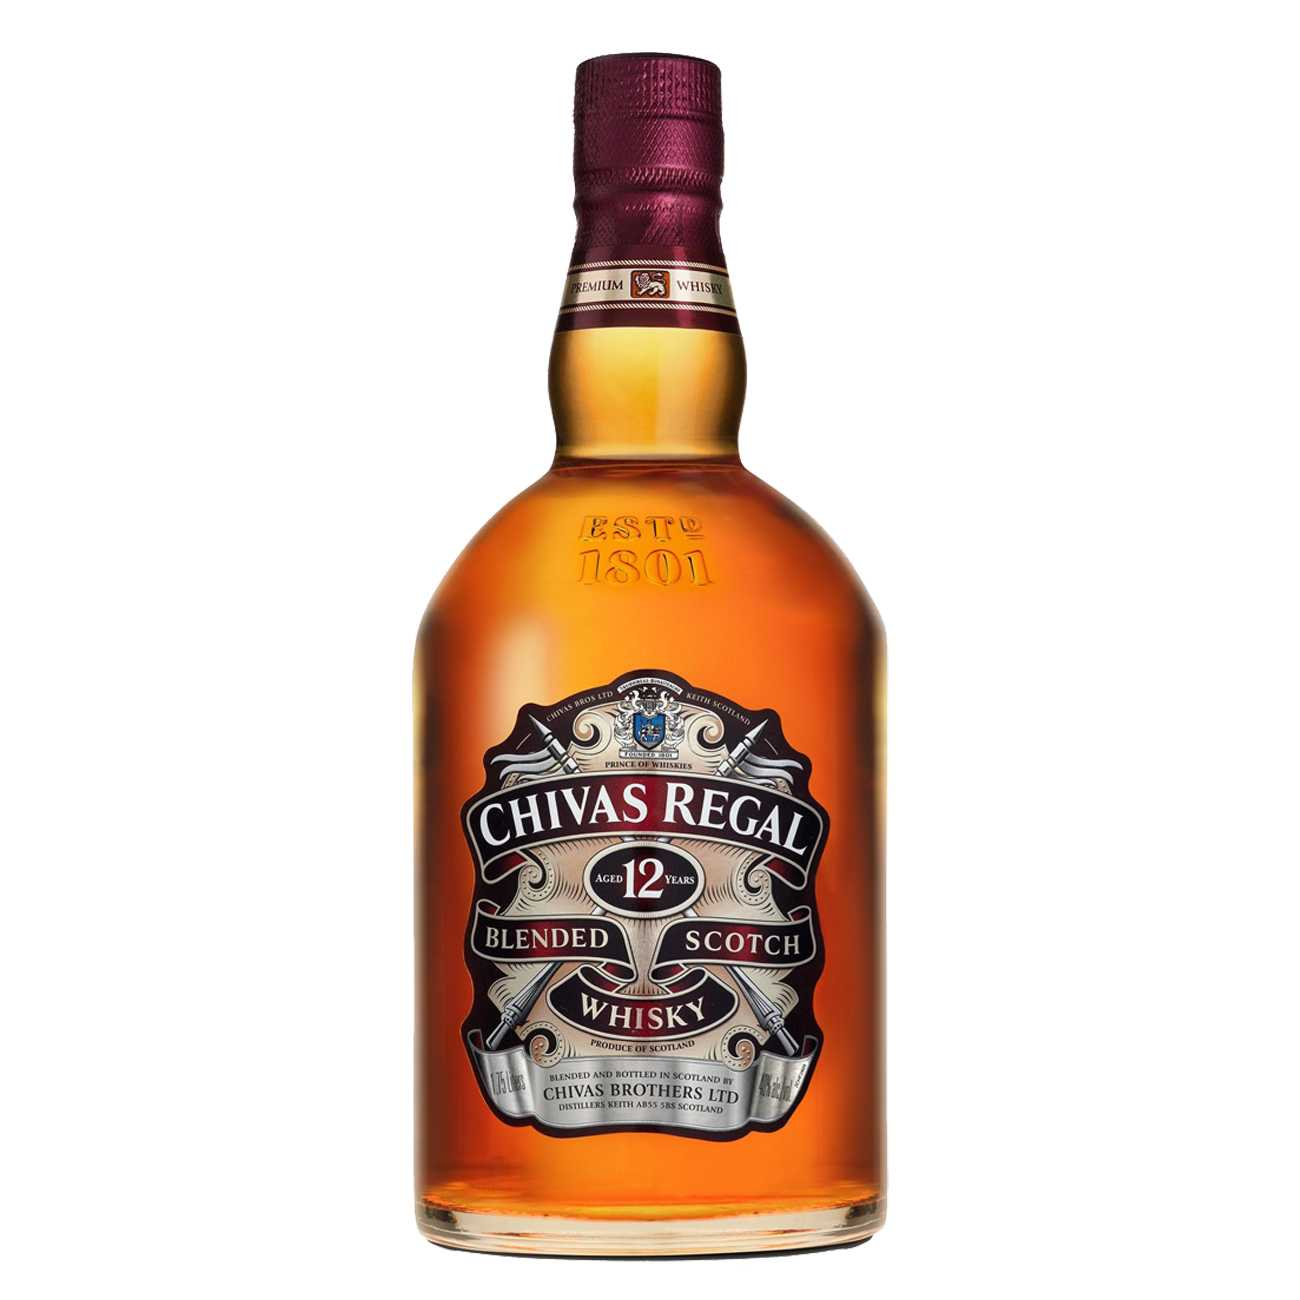 Whisky scotian, 12 YEAR OLD 1750 ML, Chivas Regal